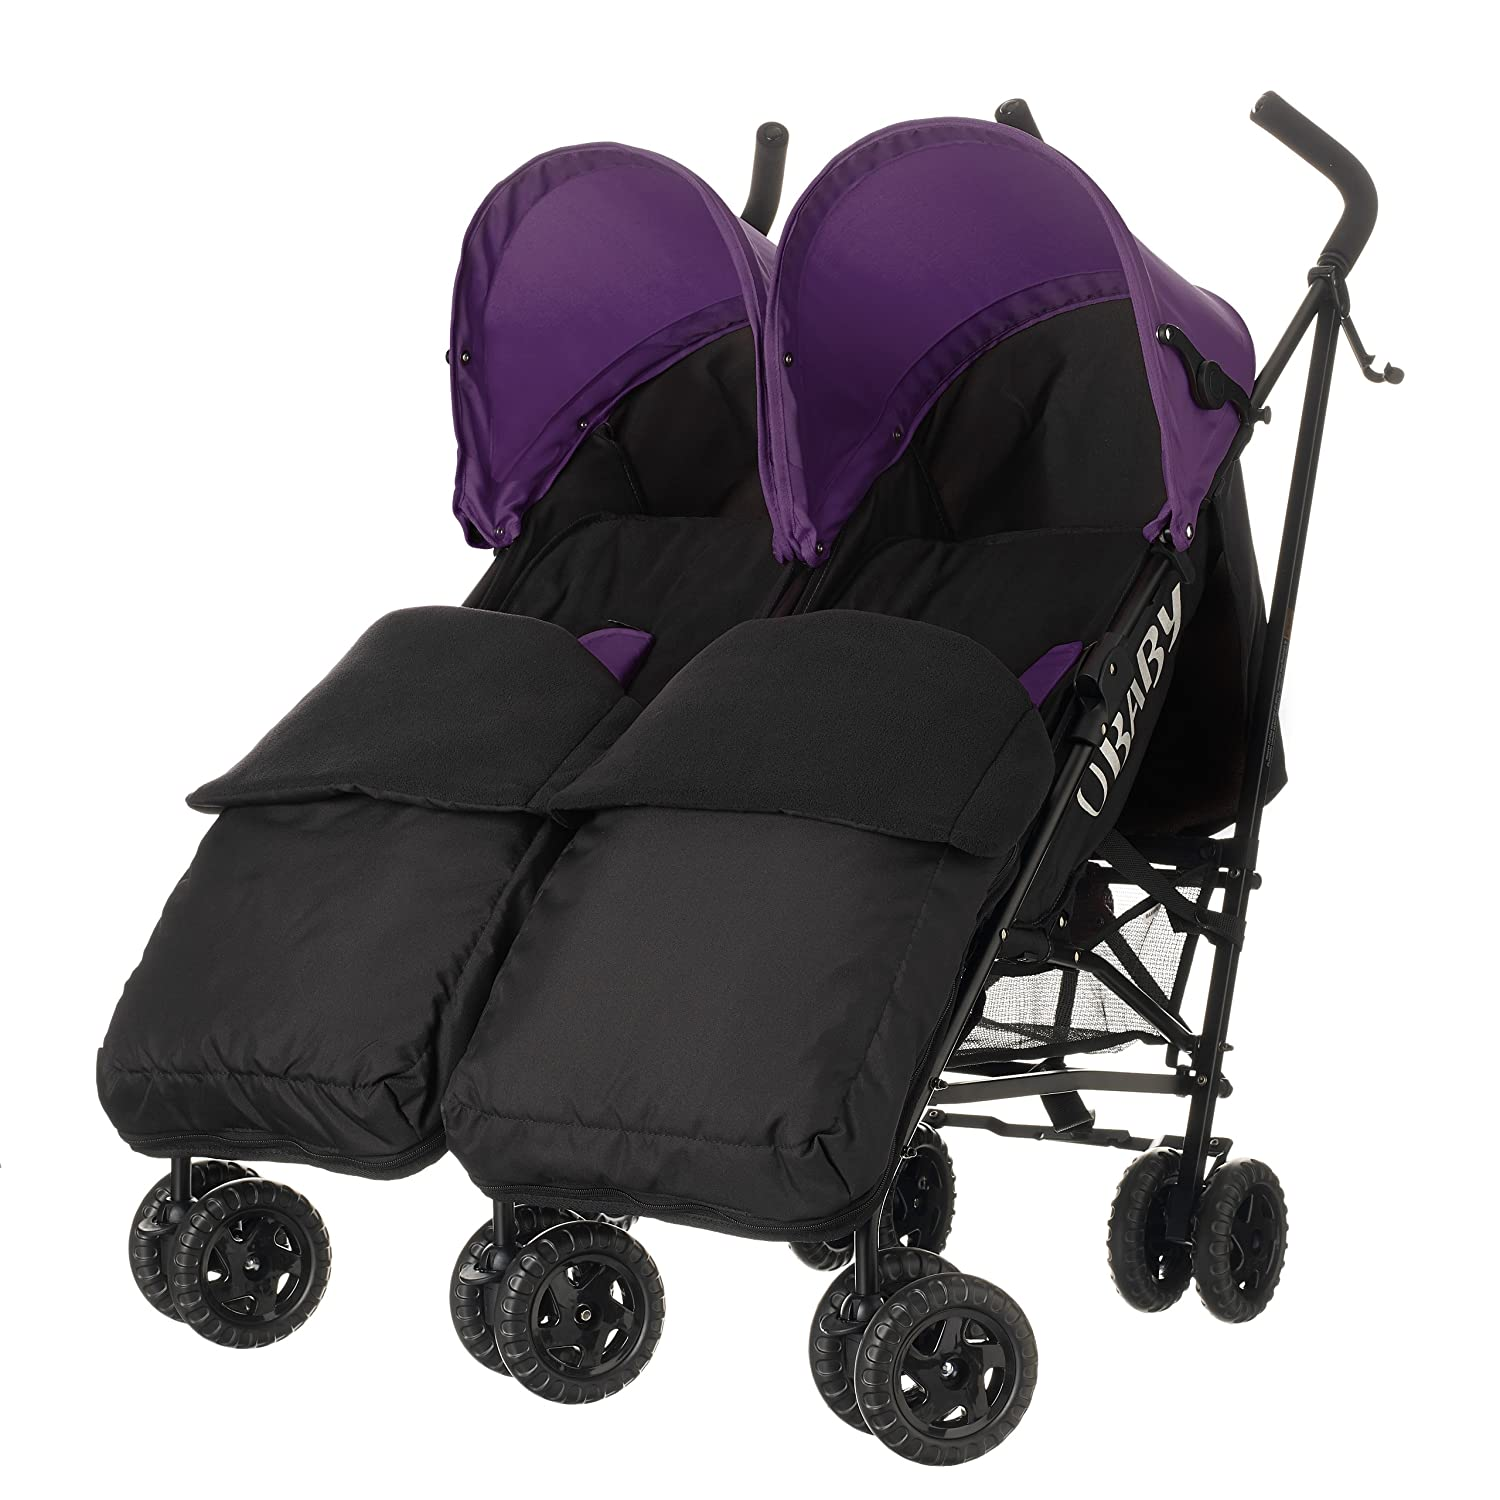 Obaby Apollo Black/Grey Twin Stroller and Black Footmuffs (Purple) 13OB0717FM04